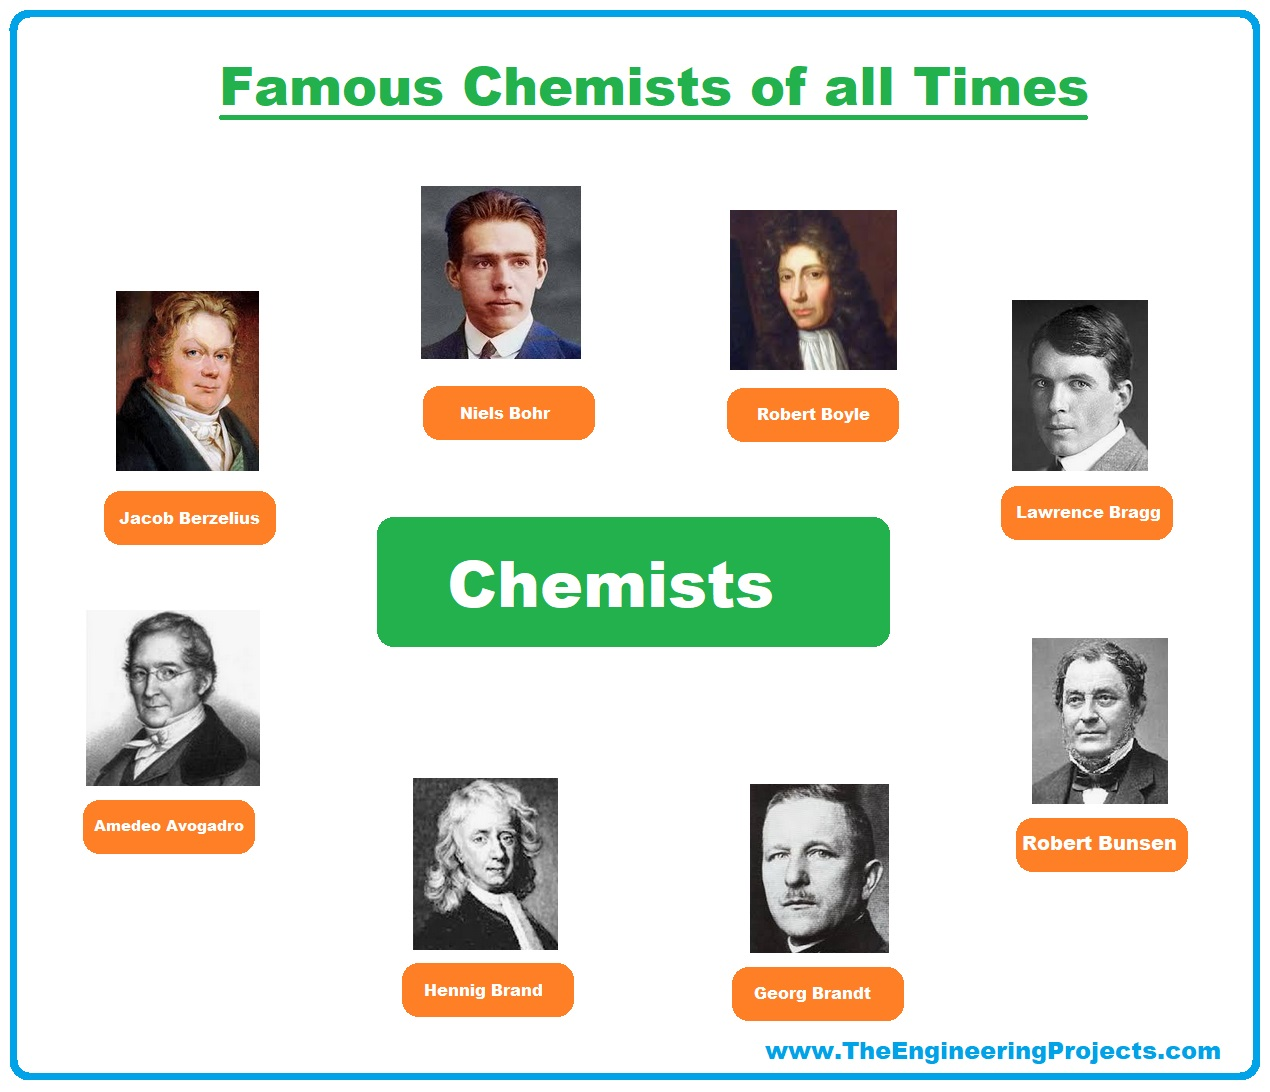 Chemistry, What is Chemistry, Chemistry Definition, Chemistry Branches, Chemistry Books,Chemistry Scientists, chemists, chemistry meaning, famous chemists